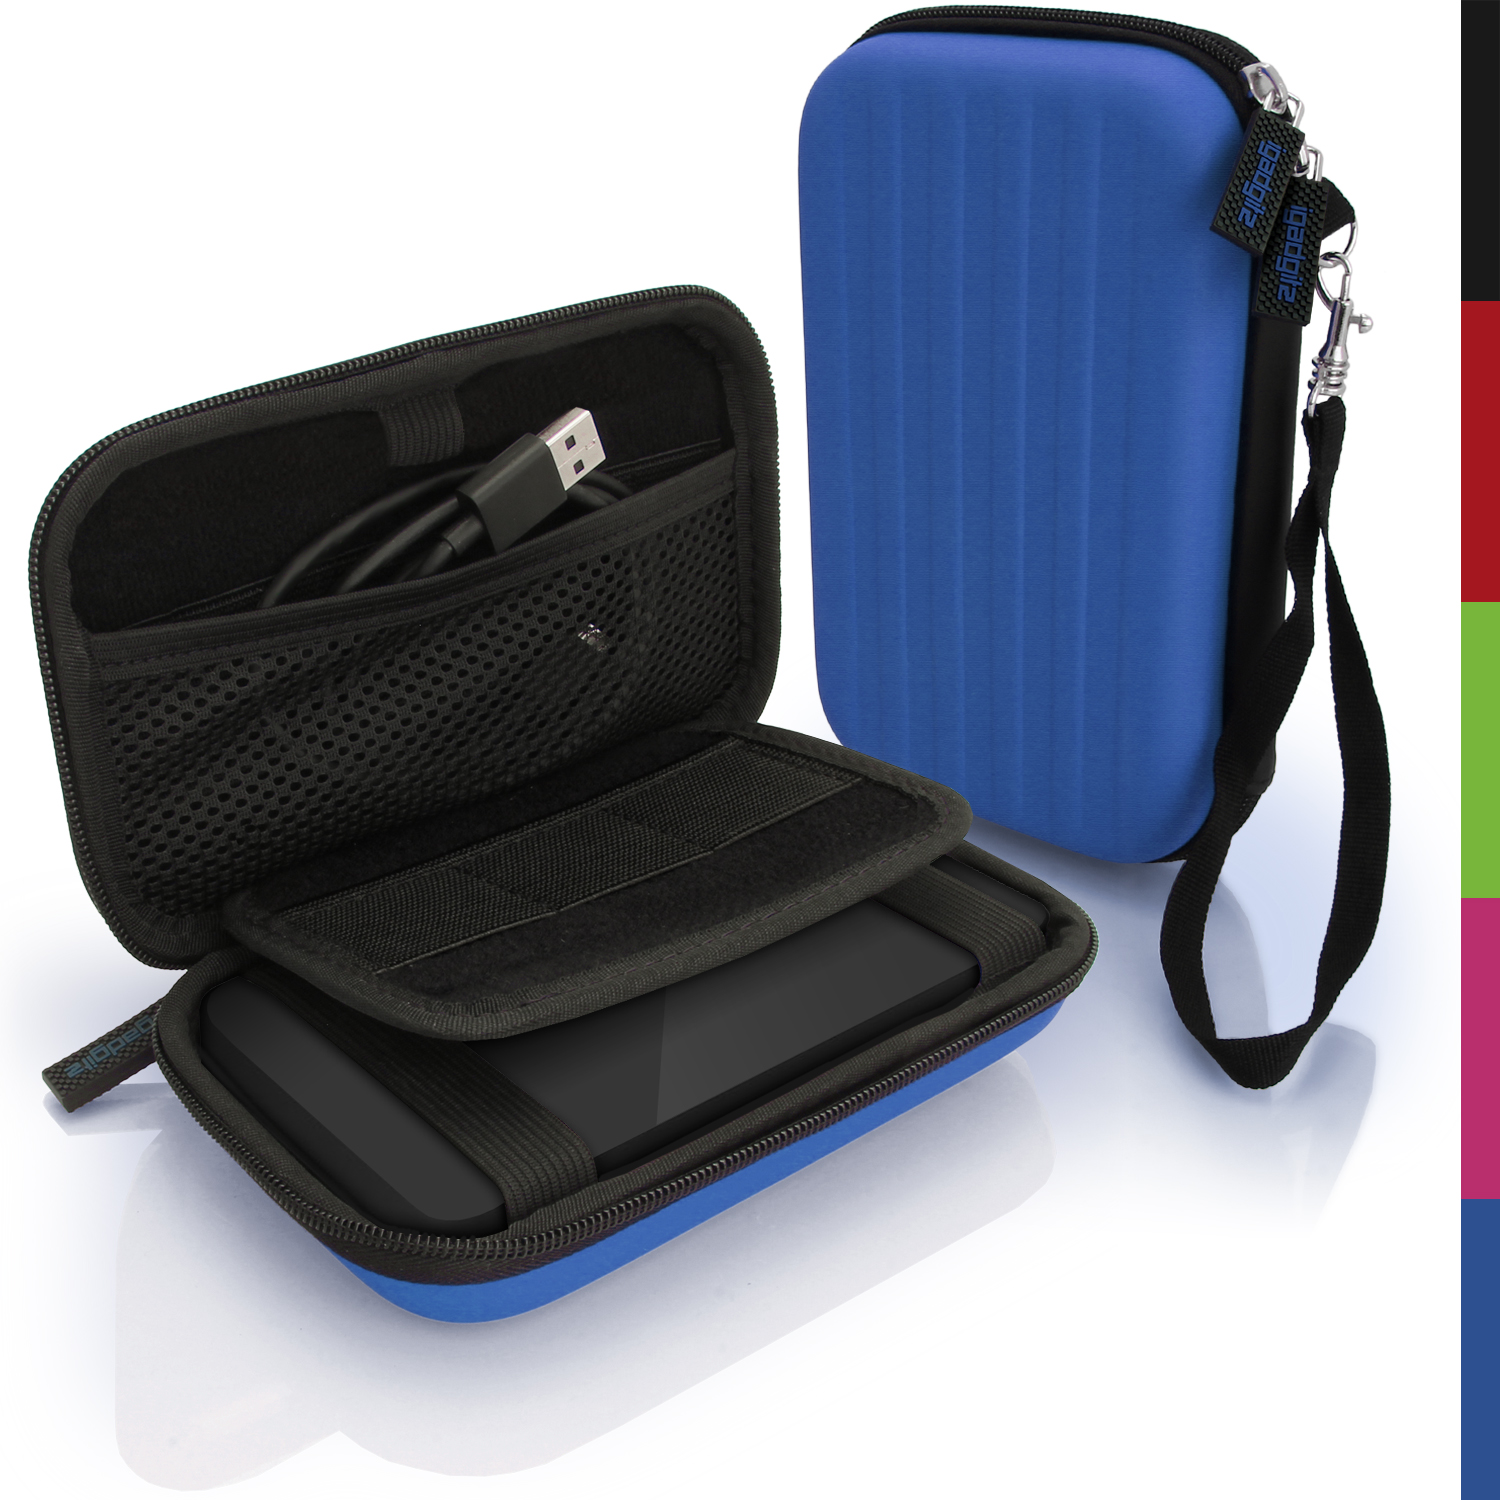 iGadgitz Blue EVA Hard Travel Case Cover for Portable External Hard Drives (Internal Dimensions: 142 x 80.6 x 21.6mm)